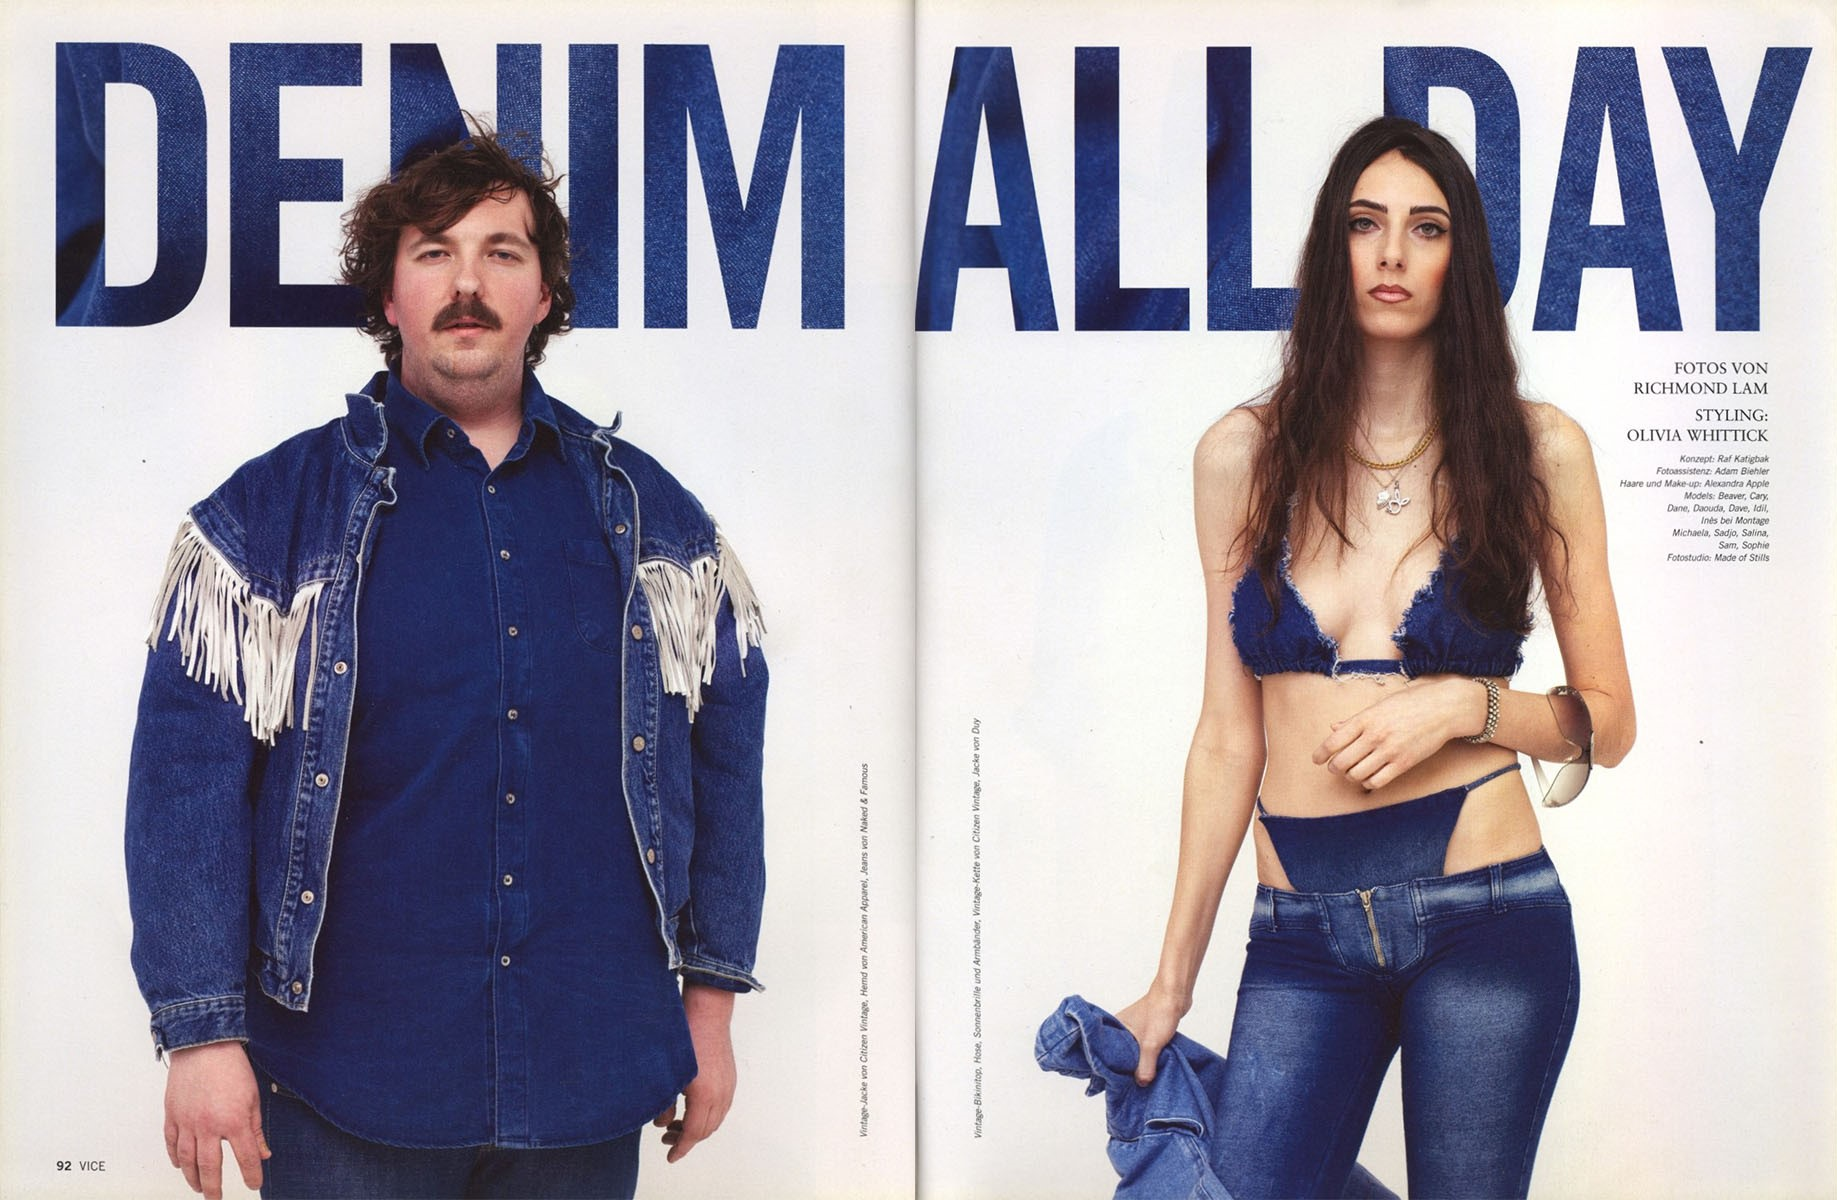 denim all day photography von richmond lam vice magazine vol 9 nr 2 the fashion issue march 2013 1